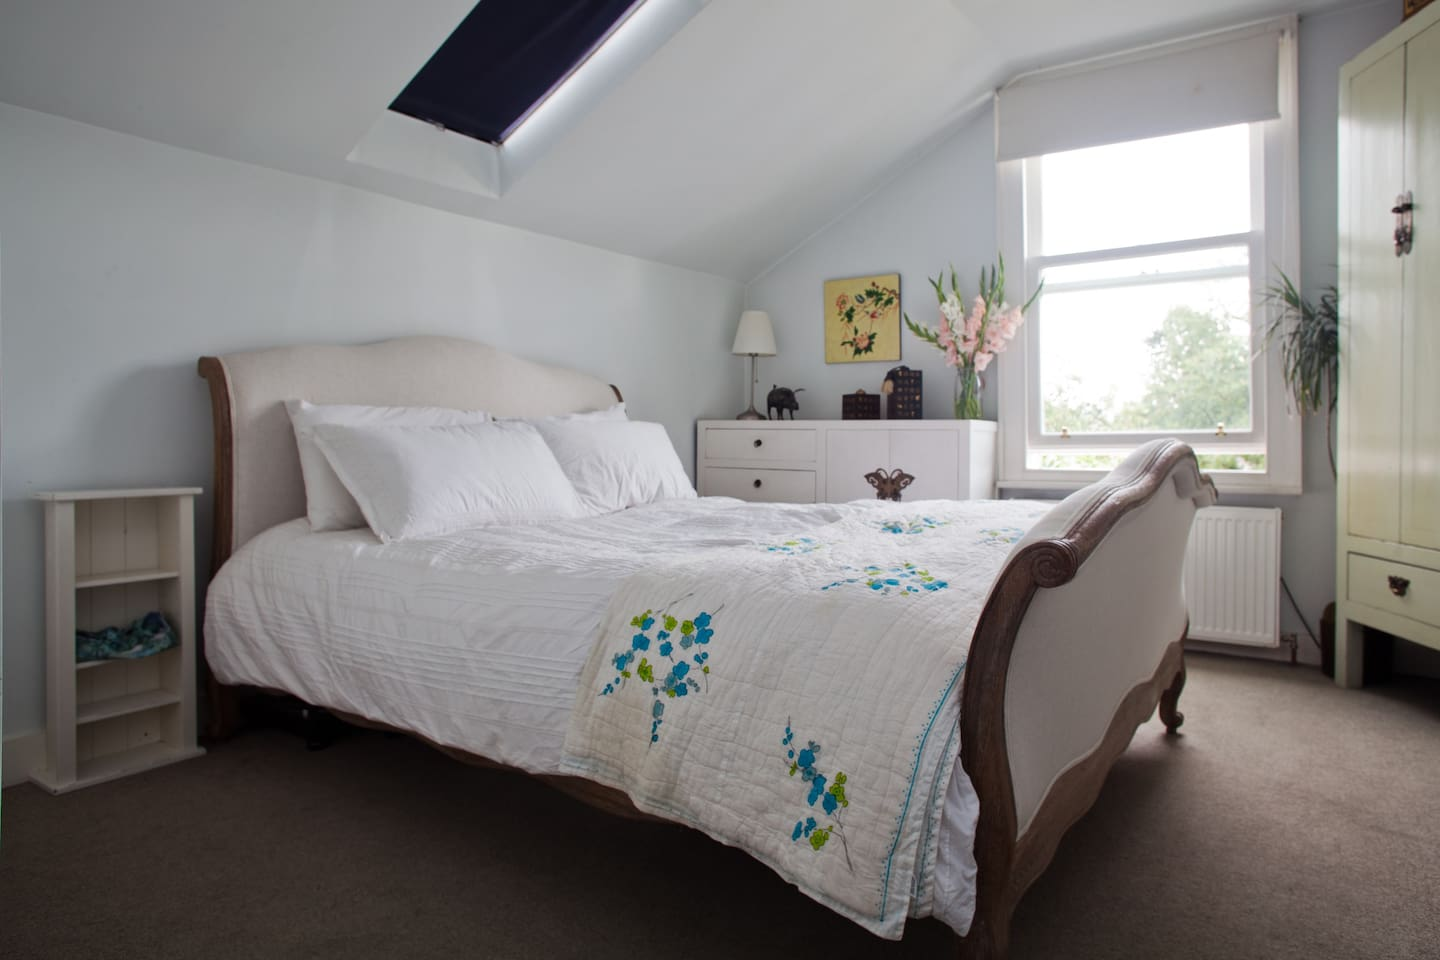 Zen Room is calming and tranquil with king size bed and views over a green field 16sqm